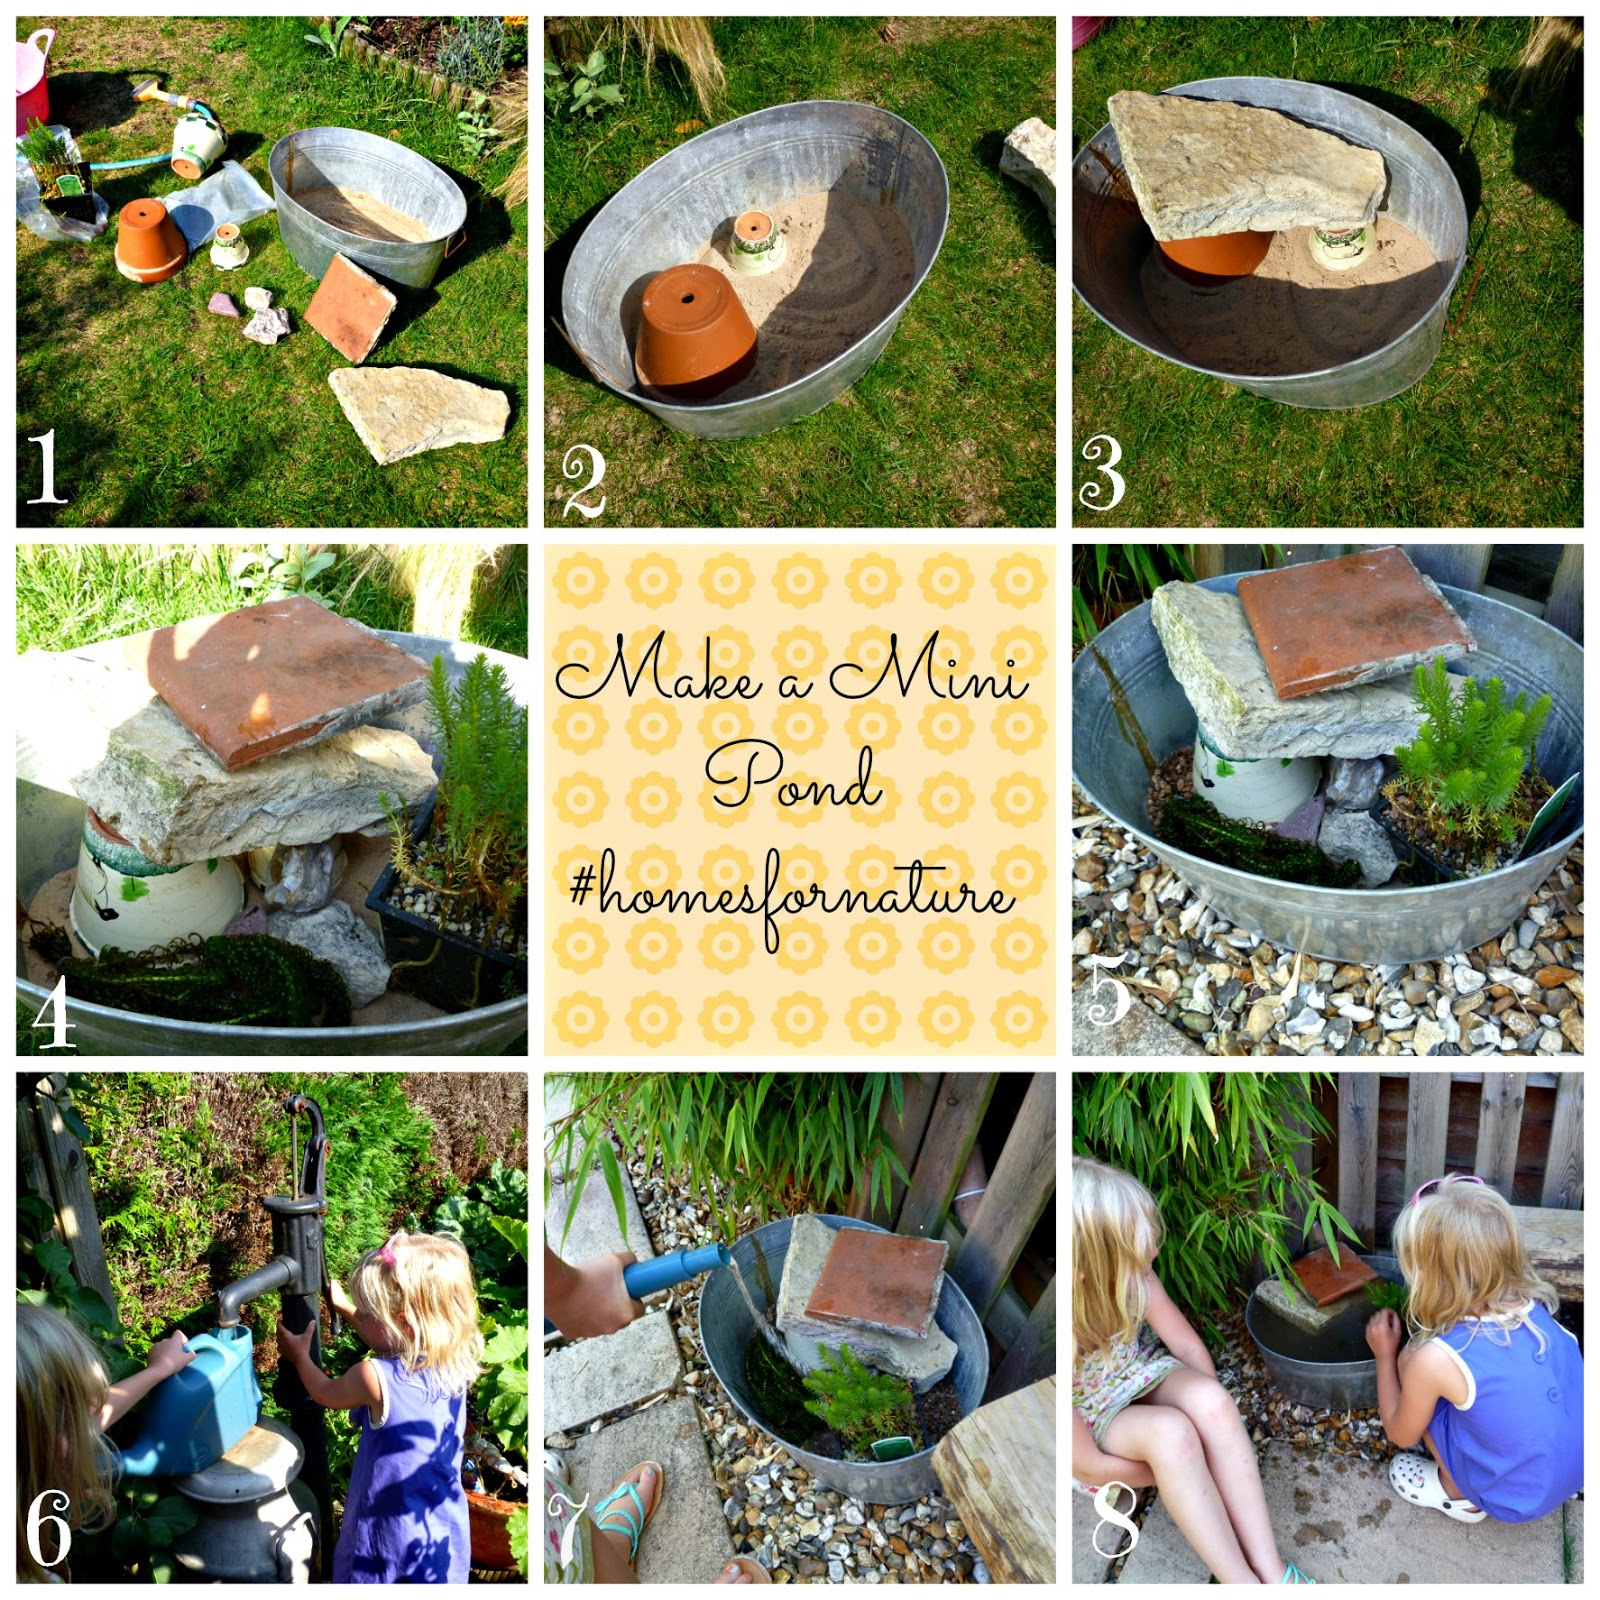 Rollercoaster mum making a mini pond for wildlife for the Making a pond